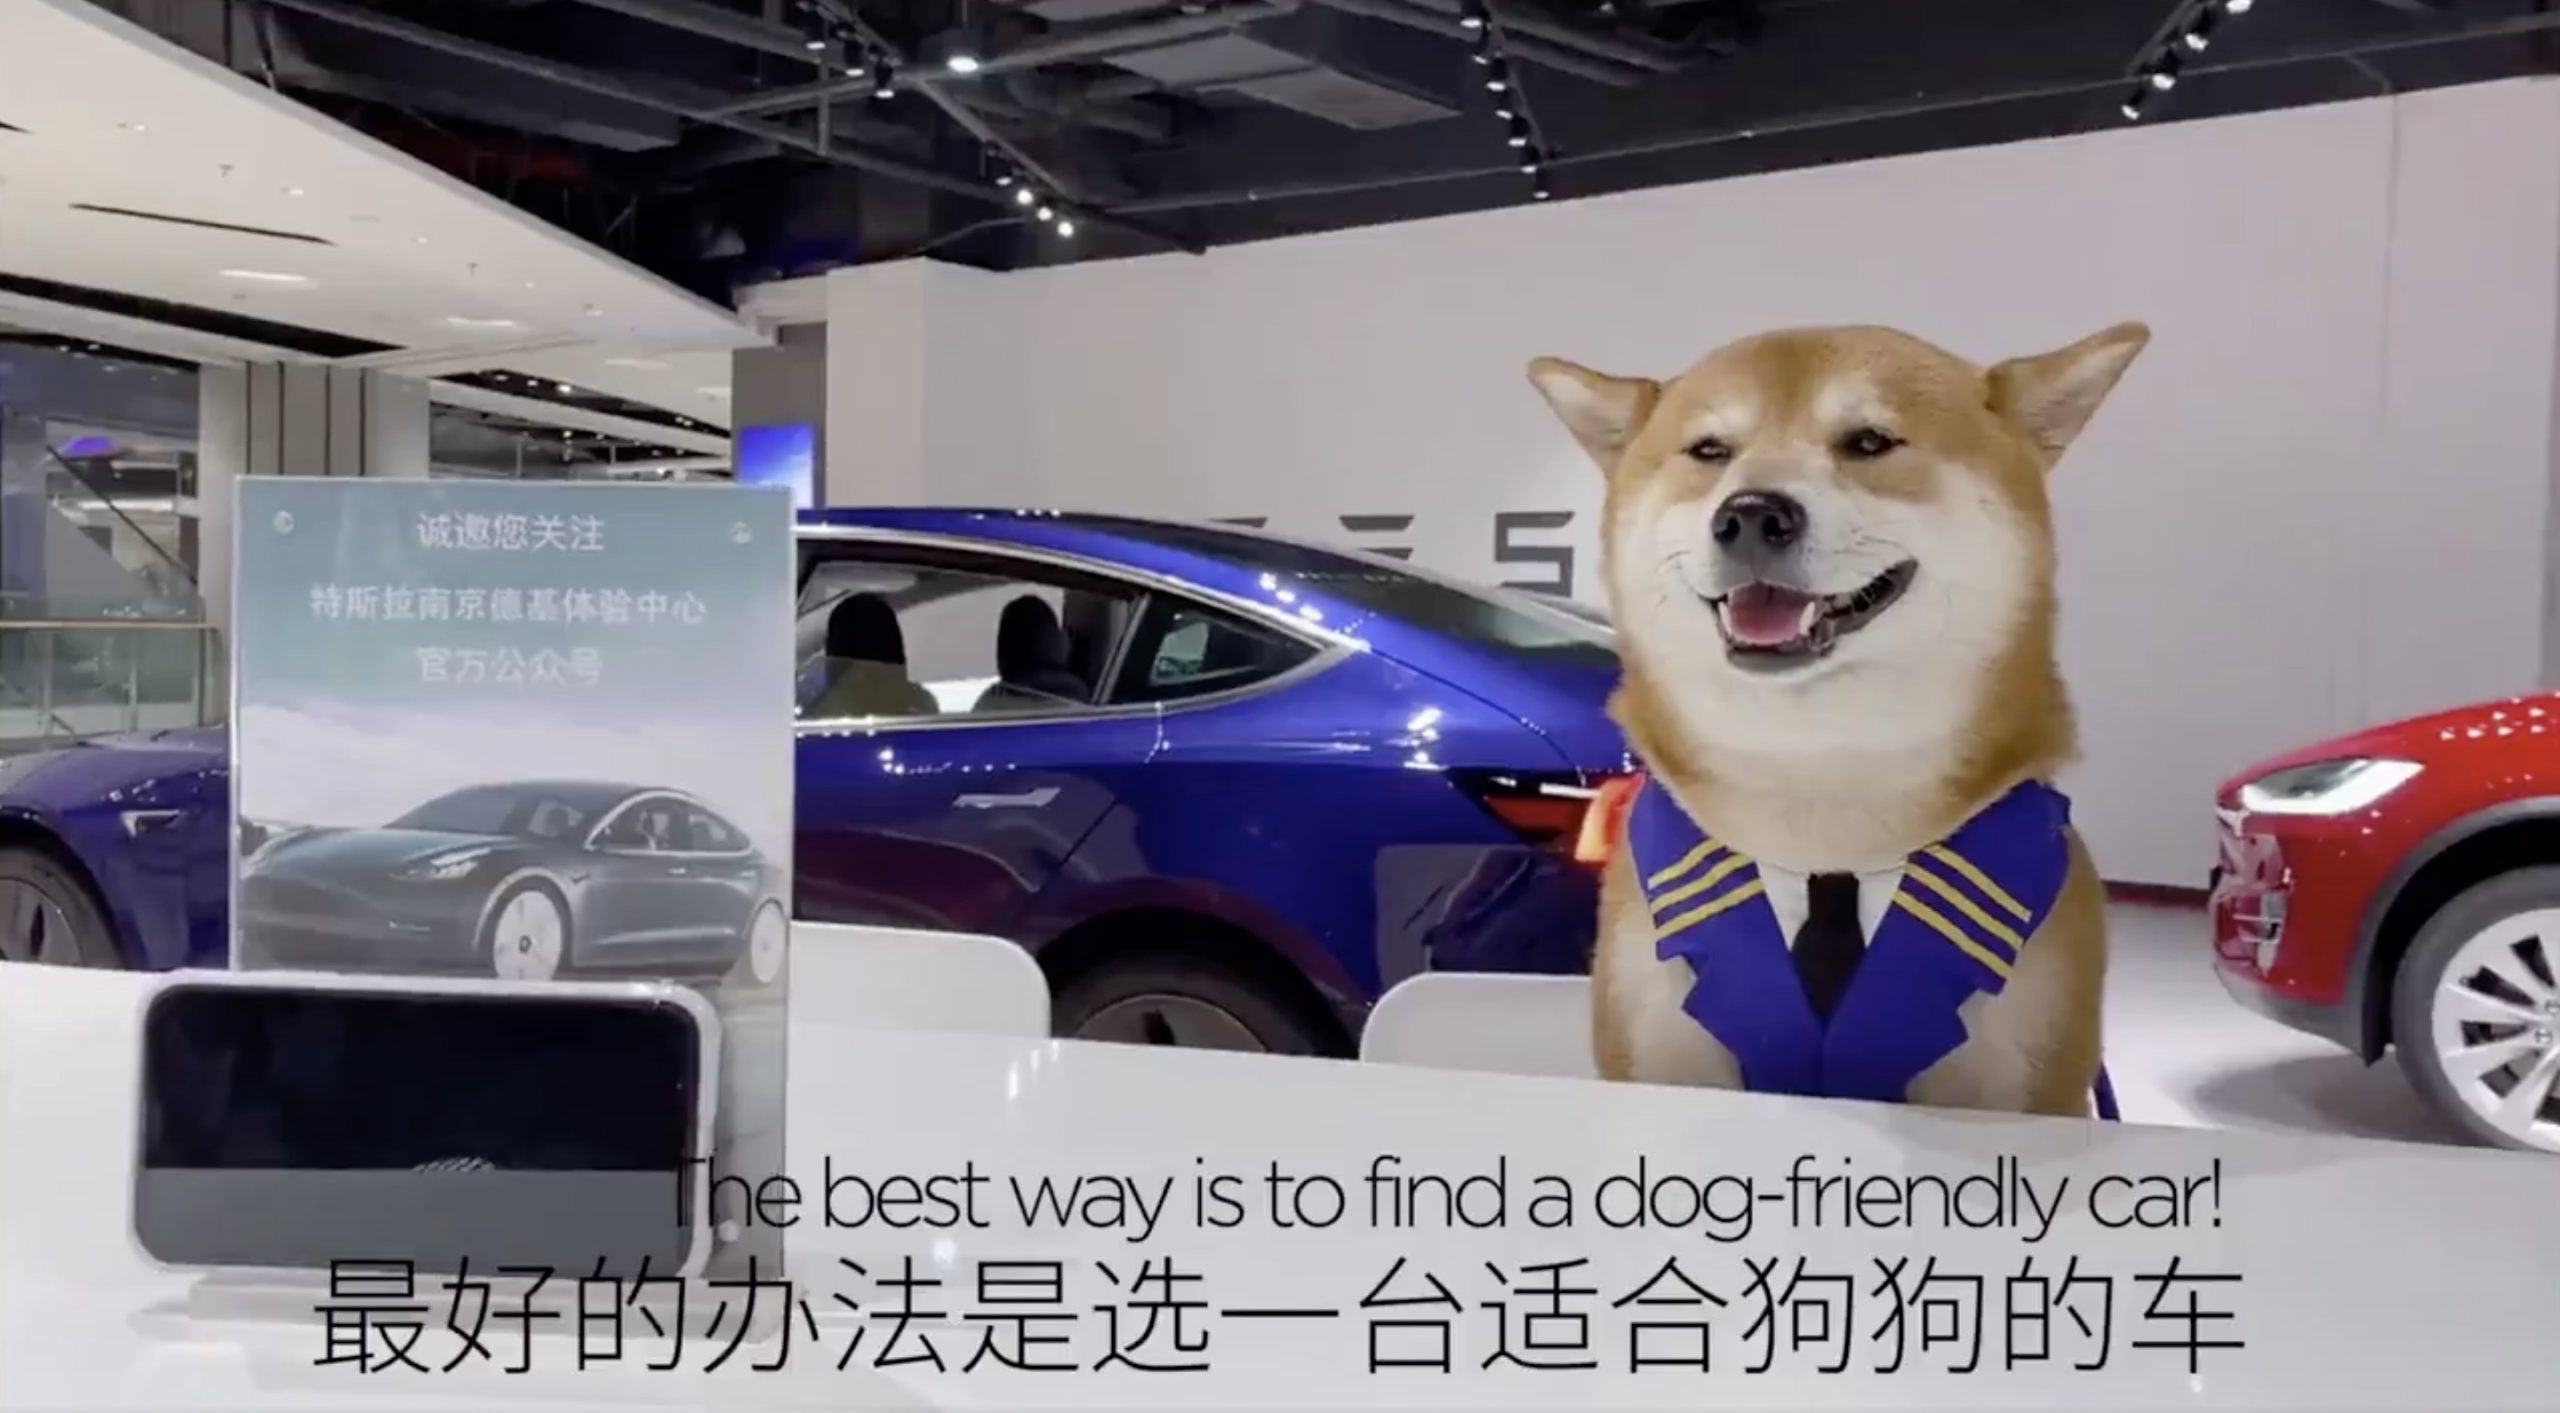 Tesla-China-Model-3-doge-meme